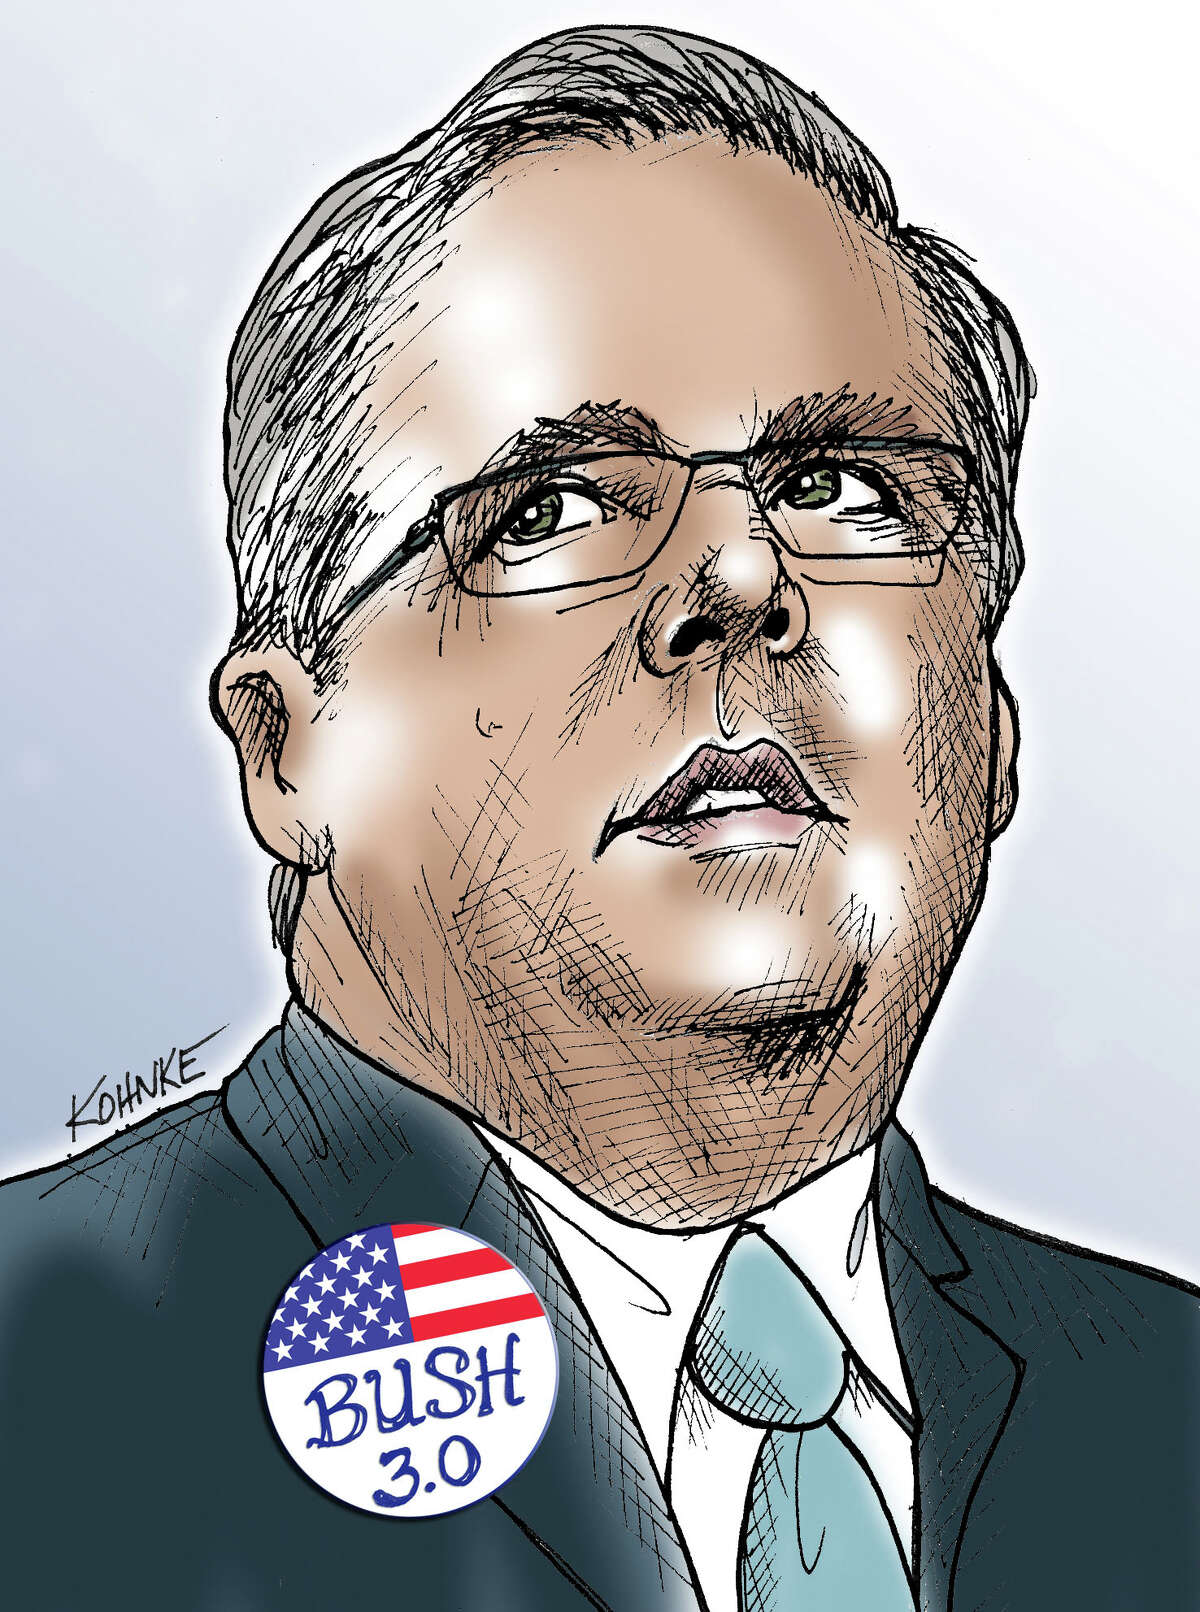 This artwork by Jennifer Kohnke relates to Jeb Bush as a possible candidate for campaign 2016.